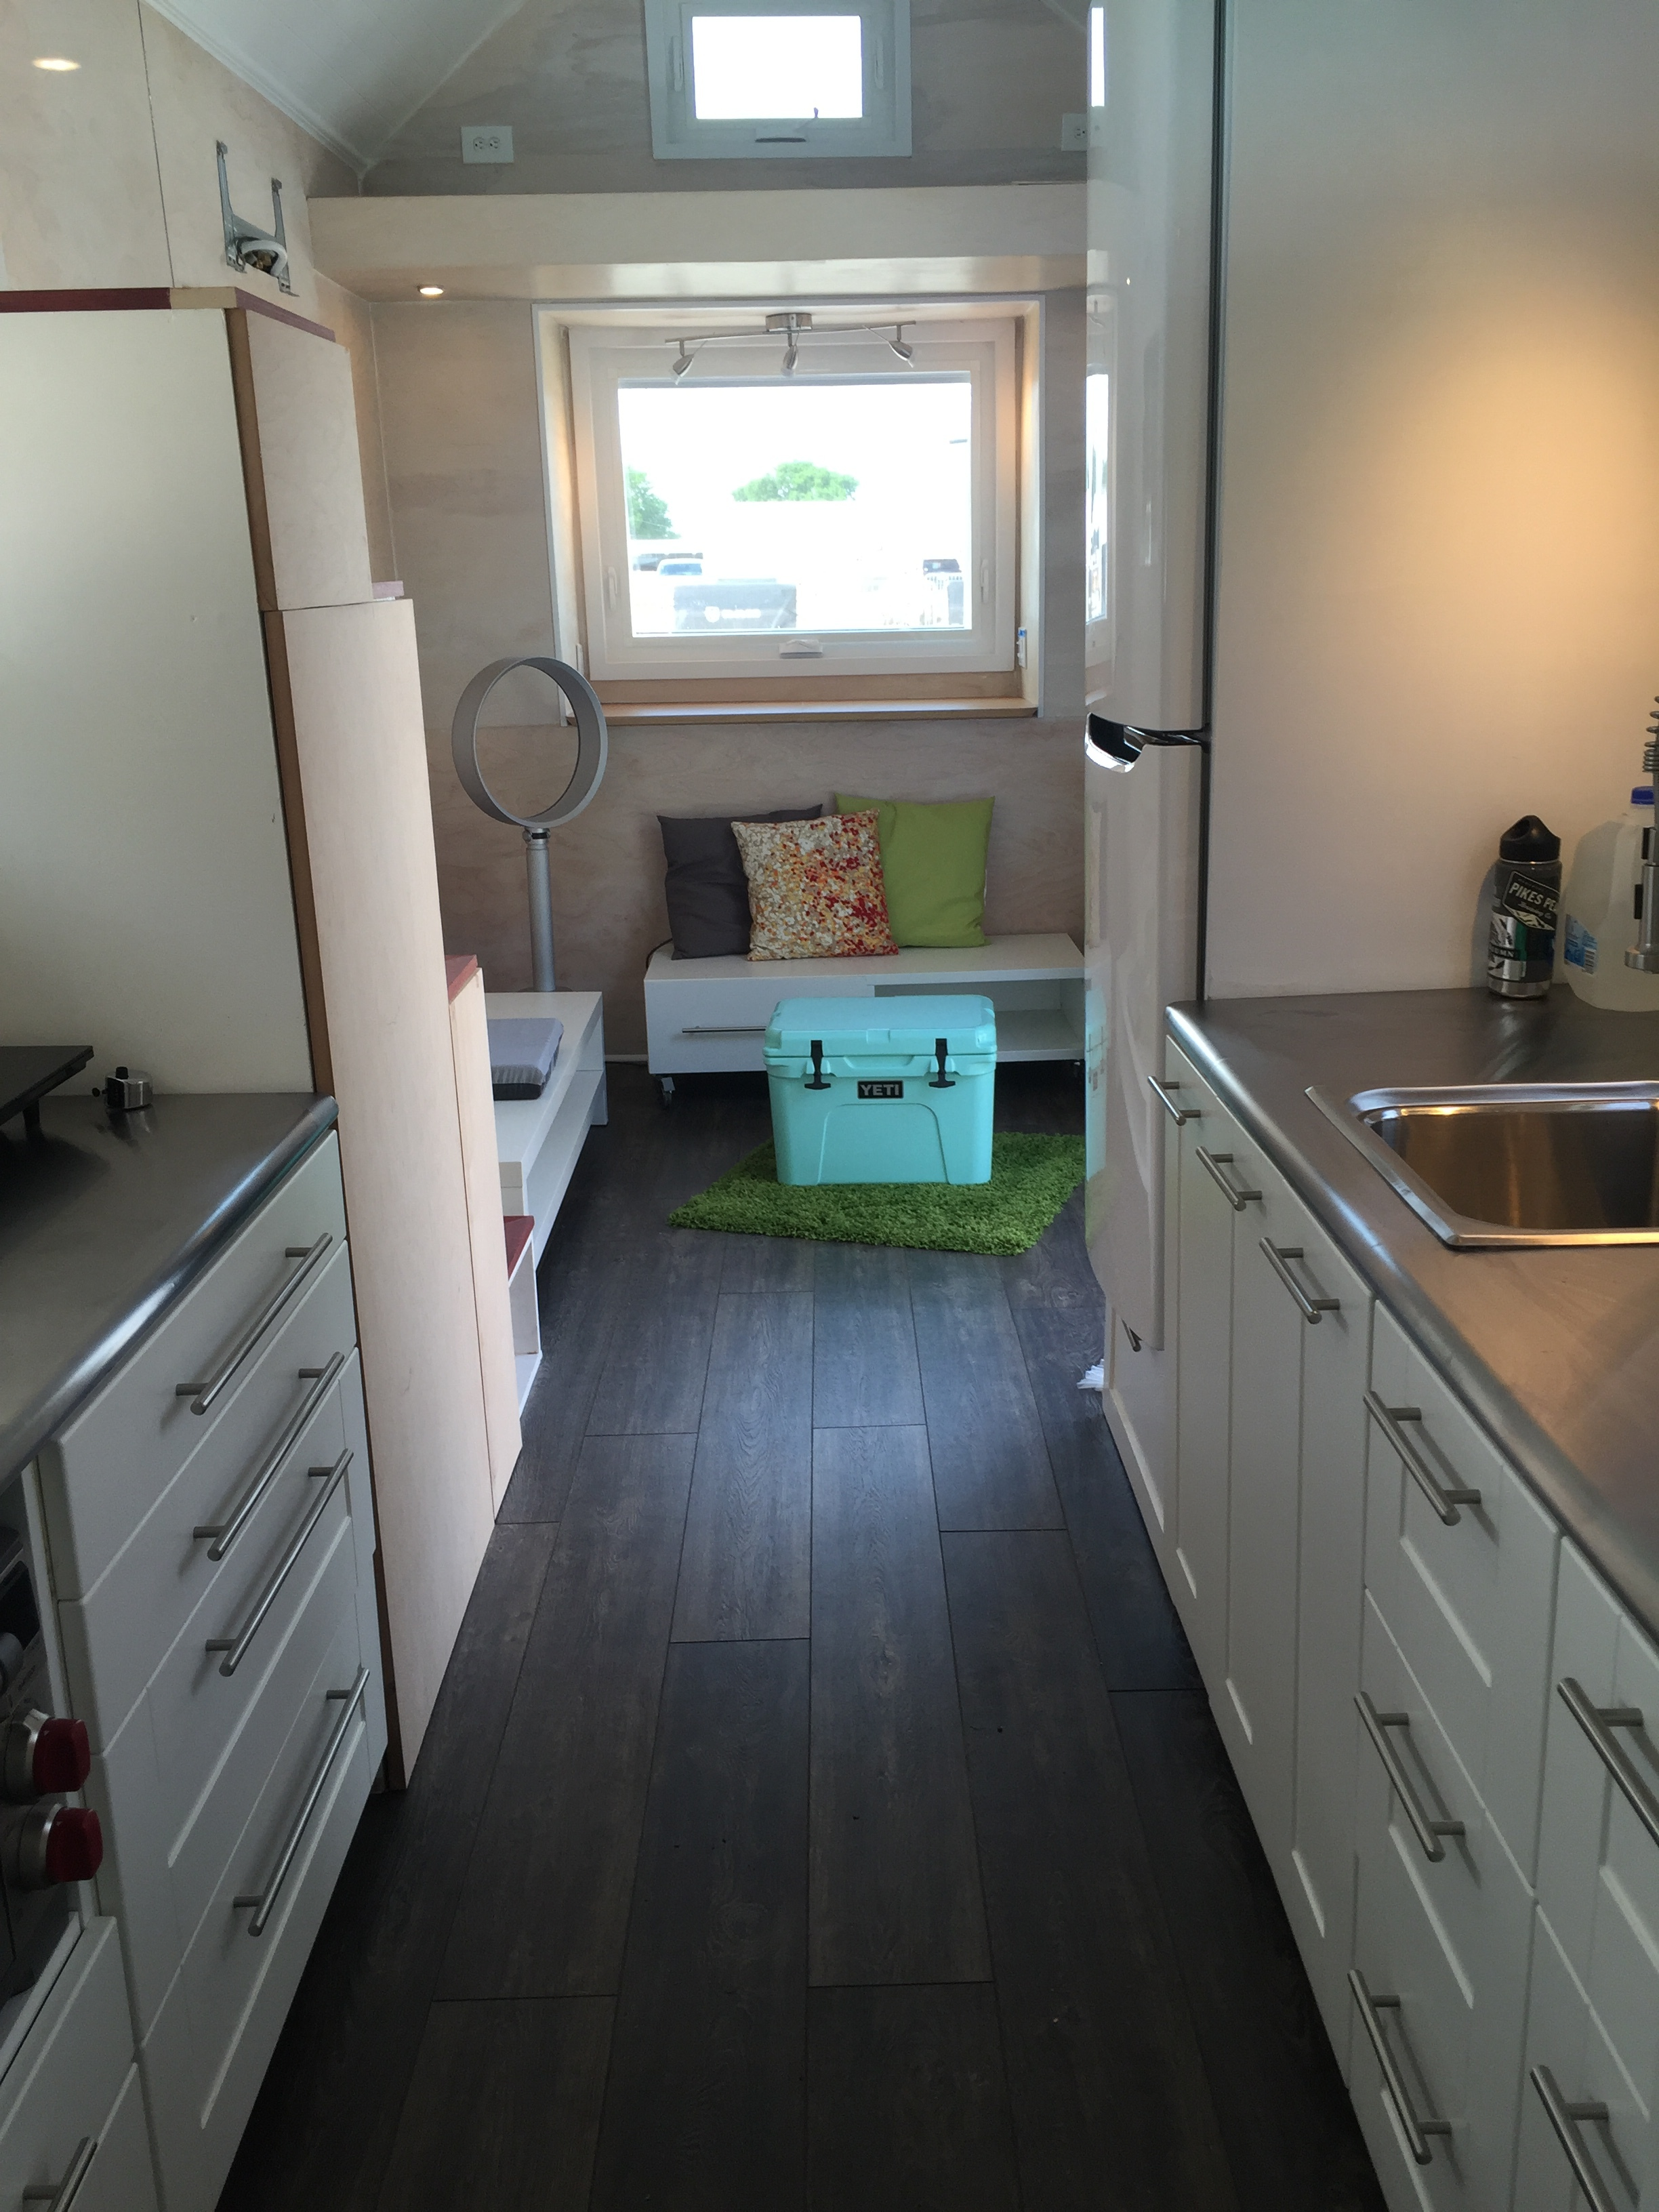 Modular Kitchen Upper Cabinets Using Ikea Cabinets In A Tiny House An In Depth Review Tiny